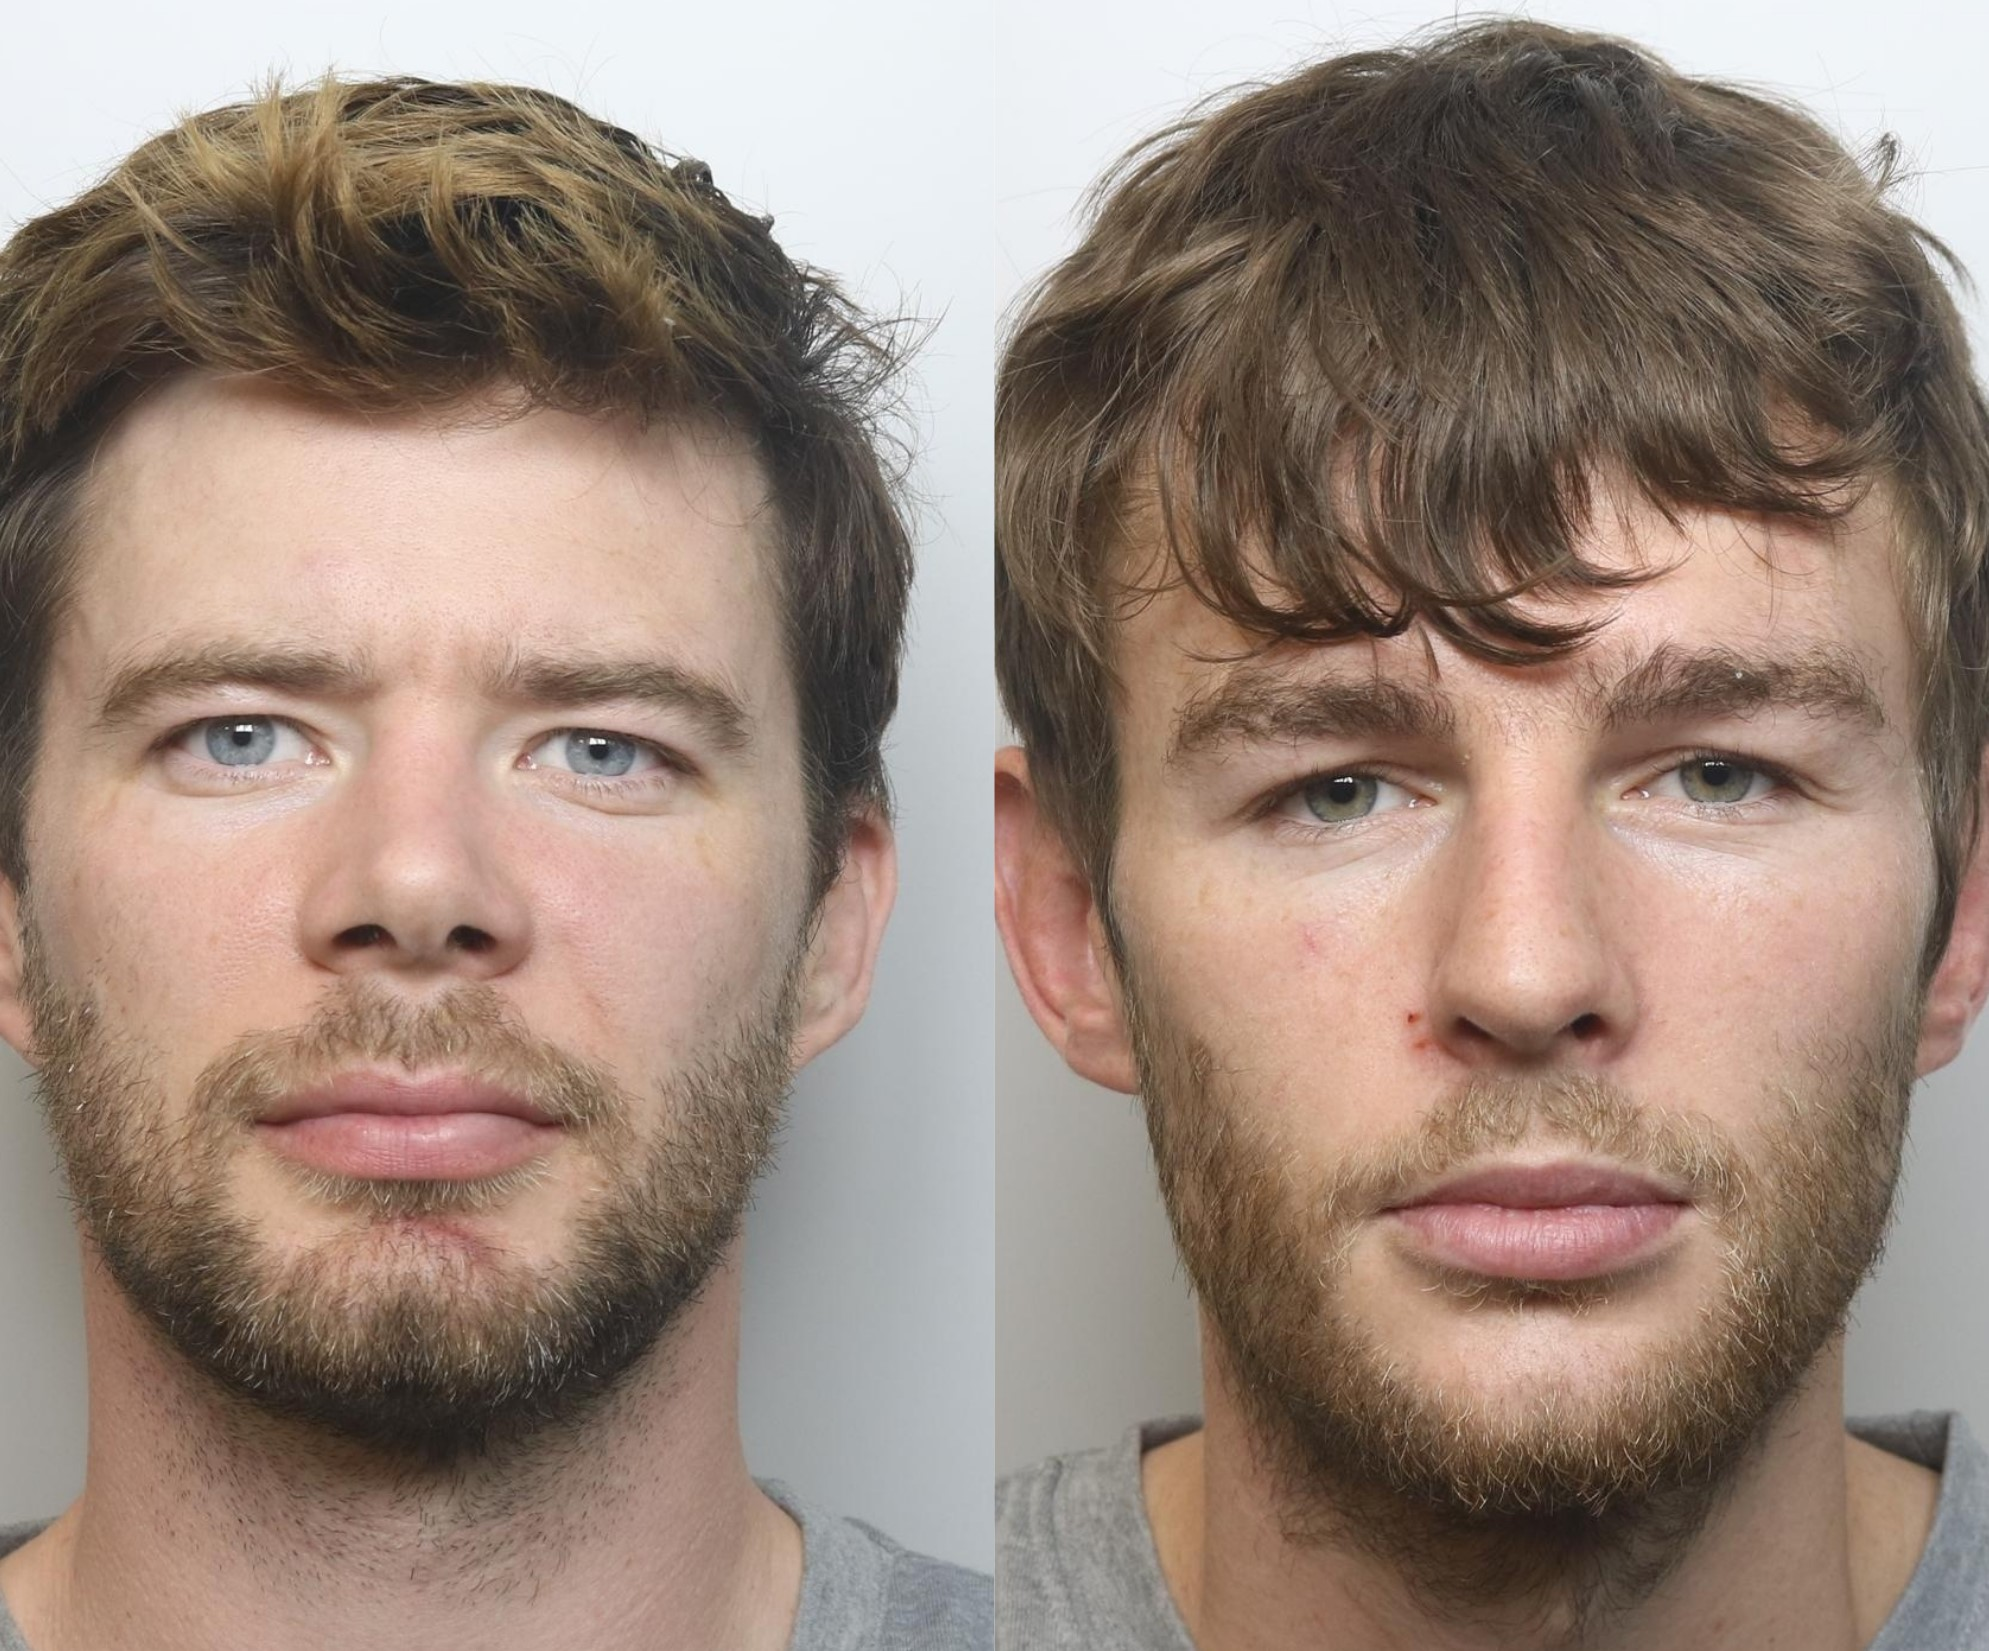 Robbers who ram raided convenience store with a pickup truck are jailed